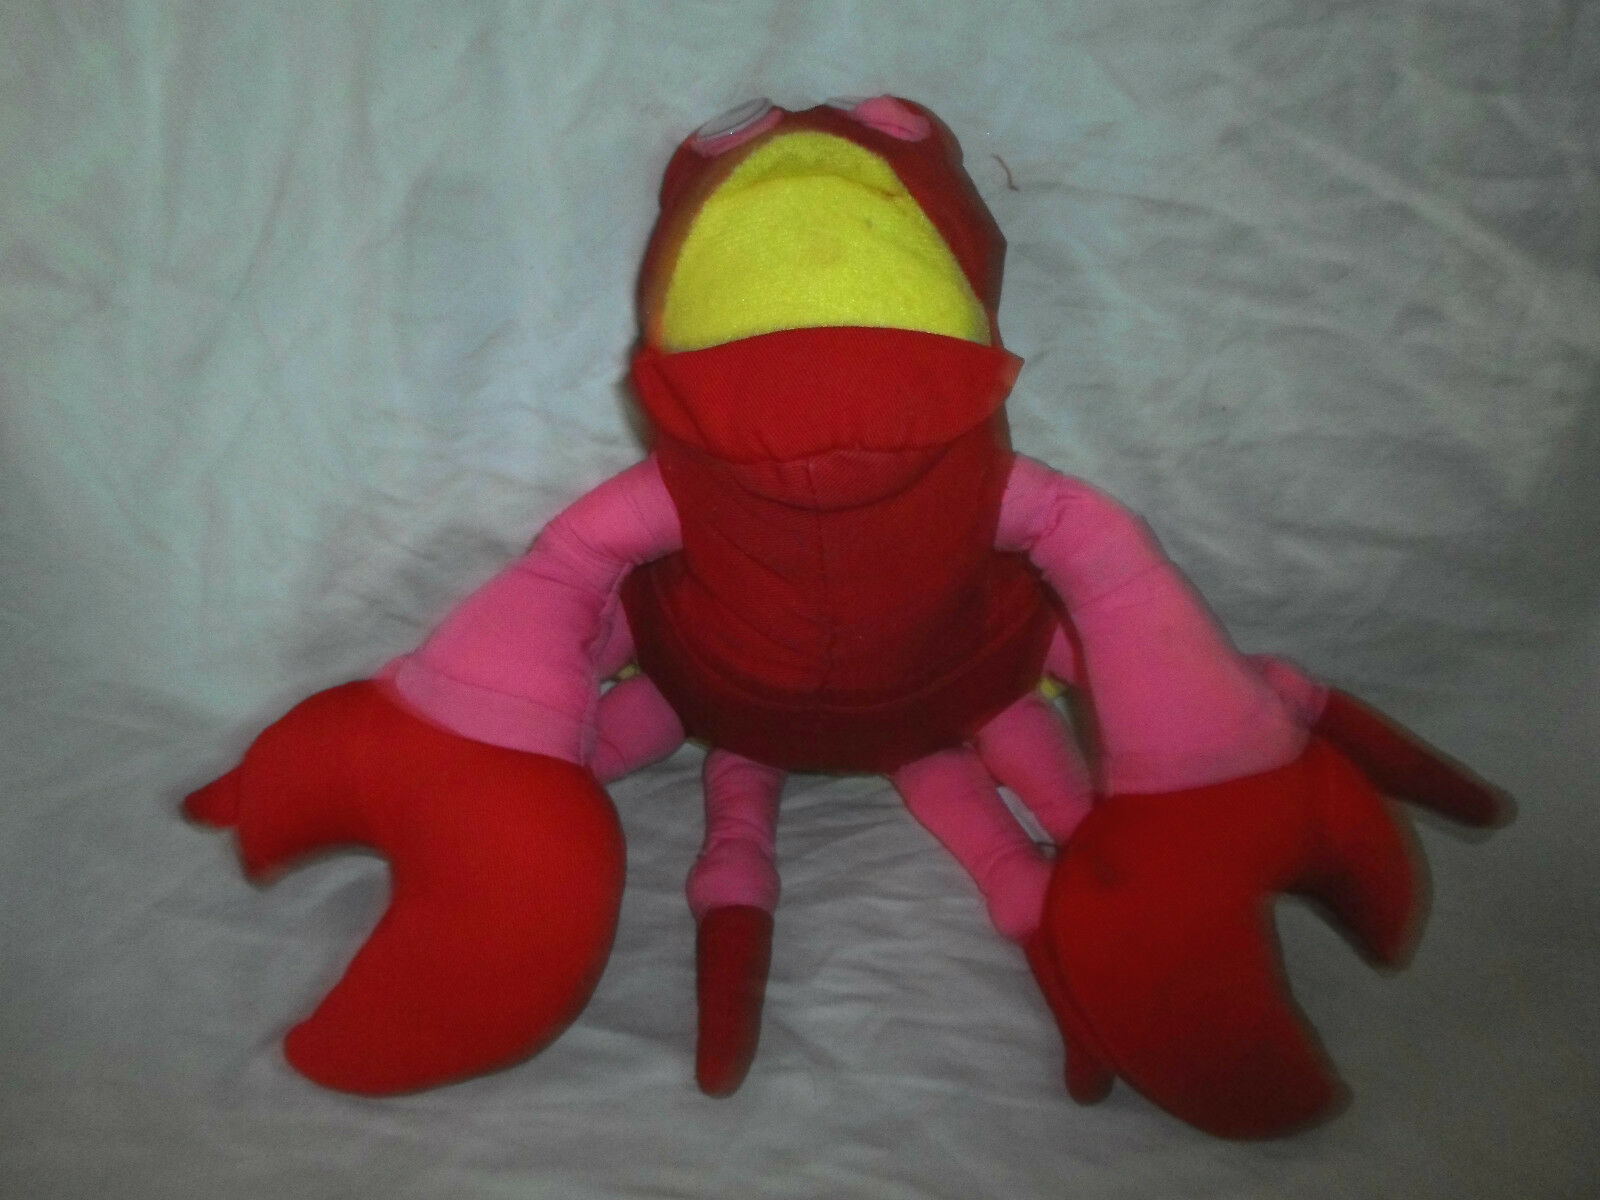 Good Stuff neon Crab Ocean Crustacean Plush Soft Toy Stuffed Animal 10